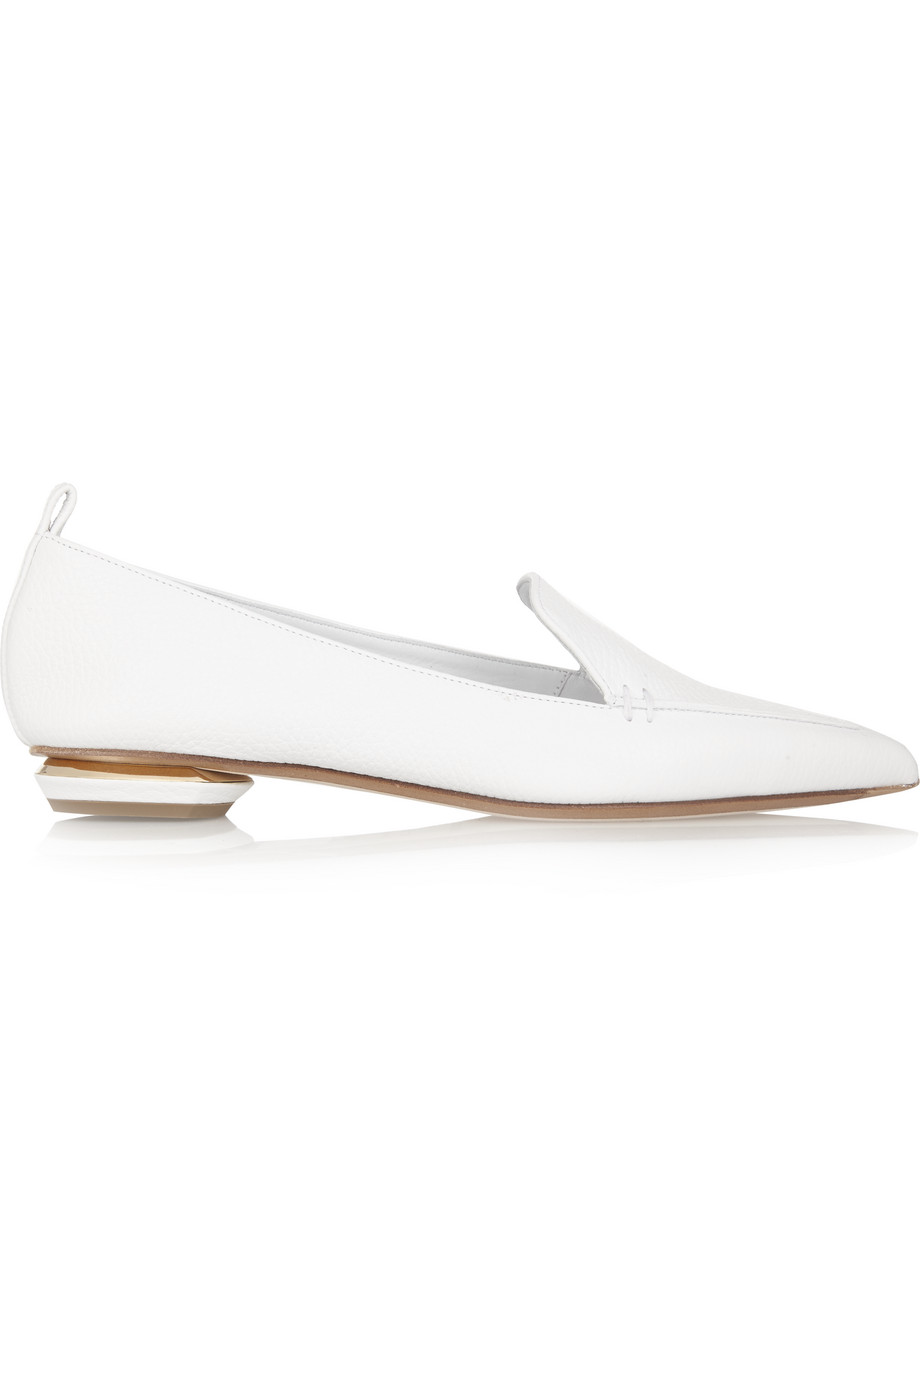 Beya Leather Point-Toe Flats, Nicholas Kirkwood, White, Women's US Size: 4.5, Size: 35